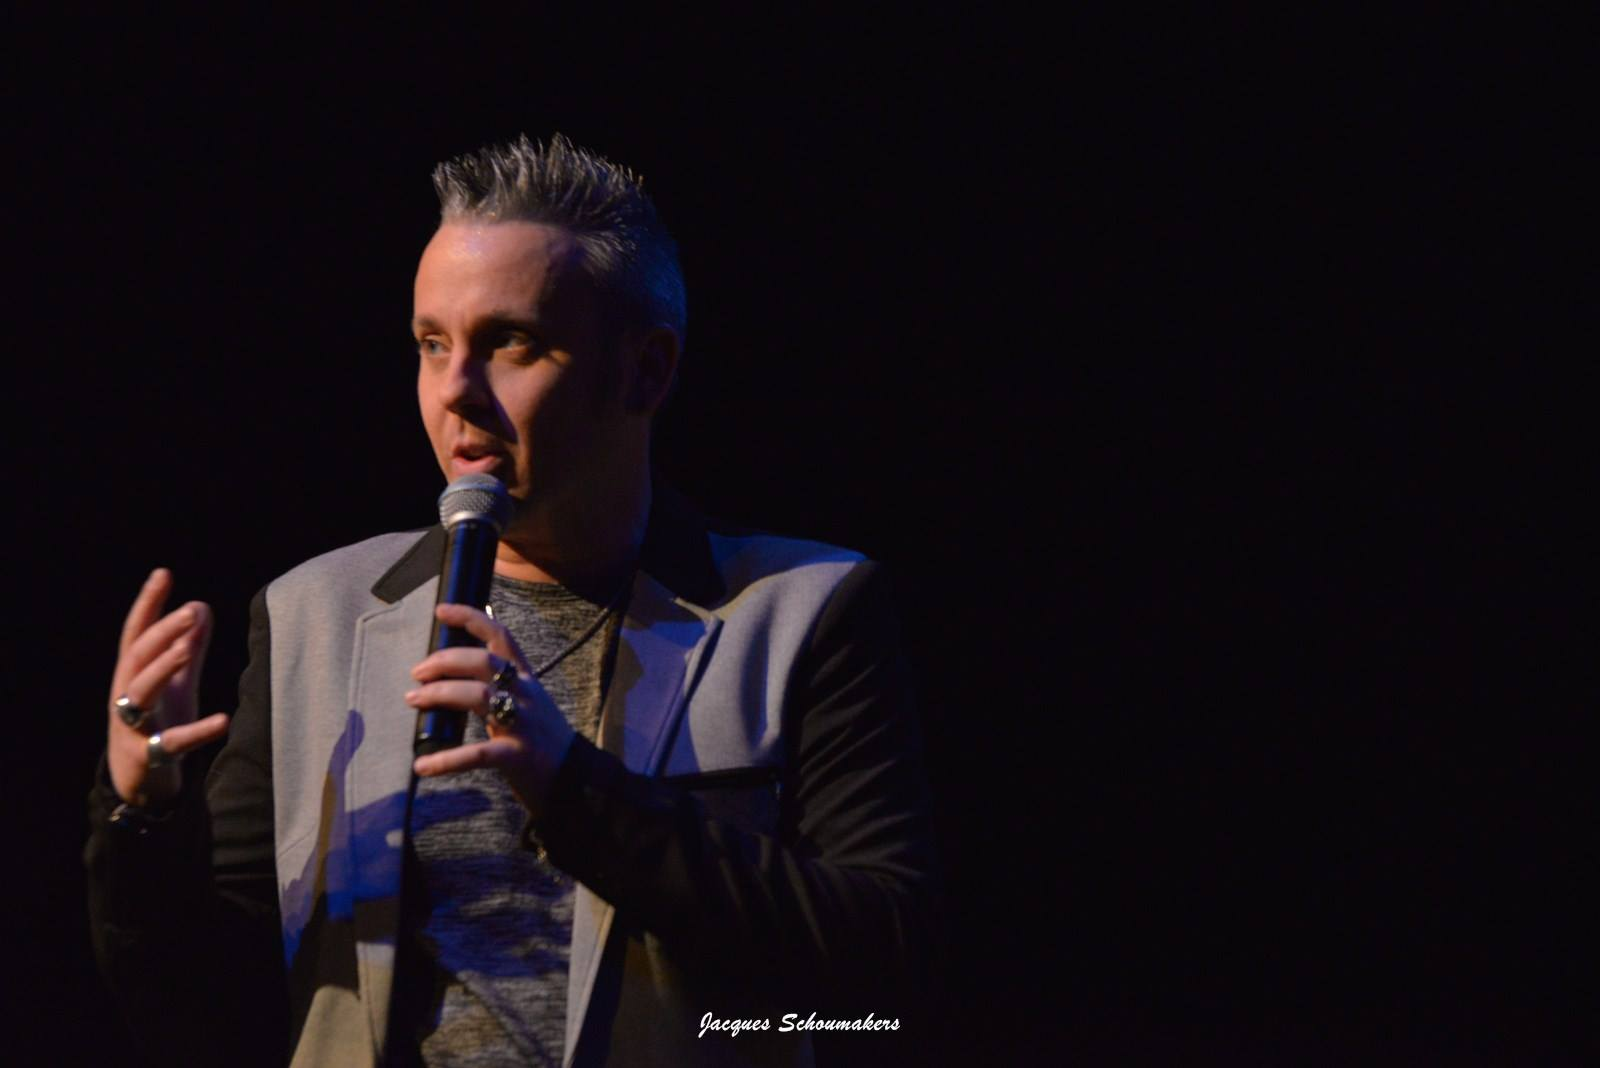 Sebastian-for-elvis-centre-culturel-andenne-jacques-schoumakers-facebook-28